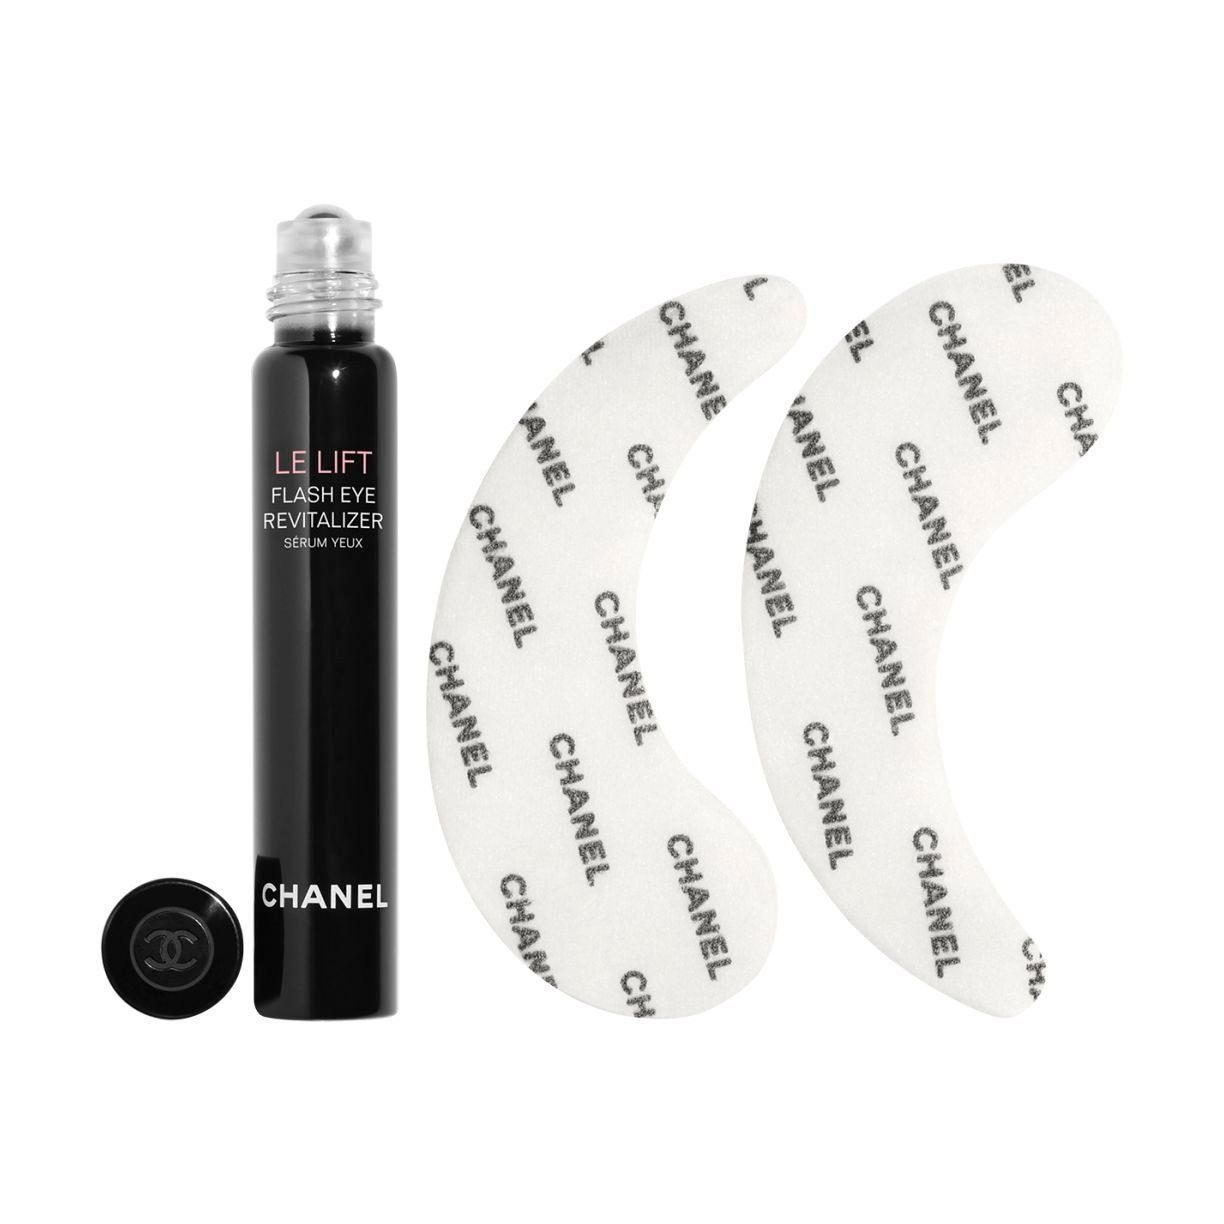 LE LIFT FIRMING - ANTI-WRINKLE FLASH EYE REVITALISER 1pce